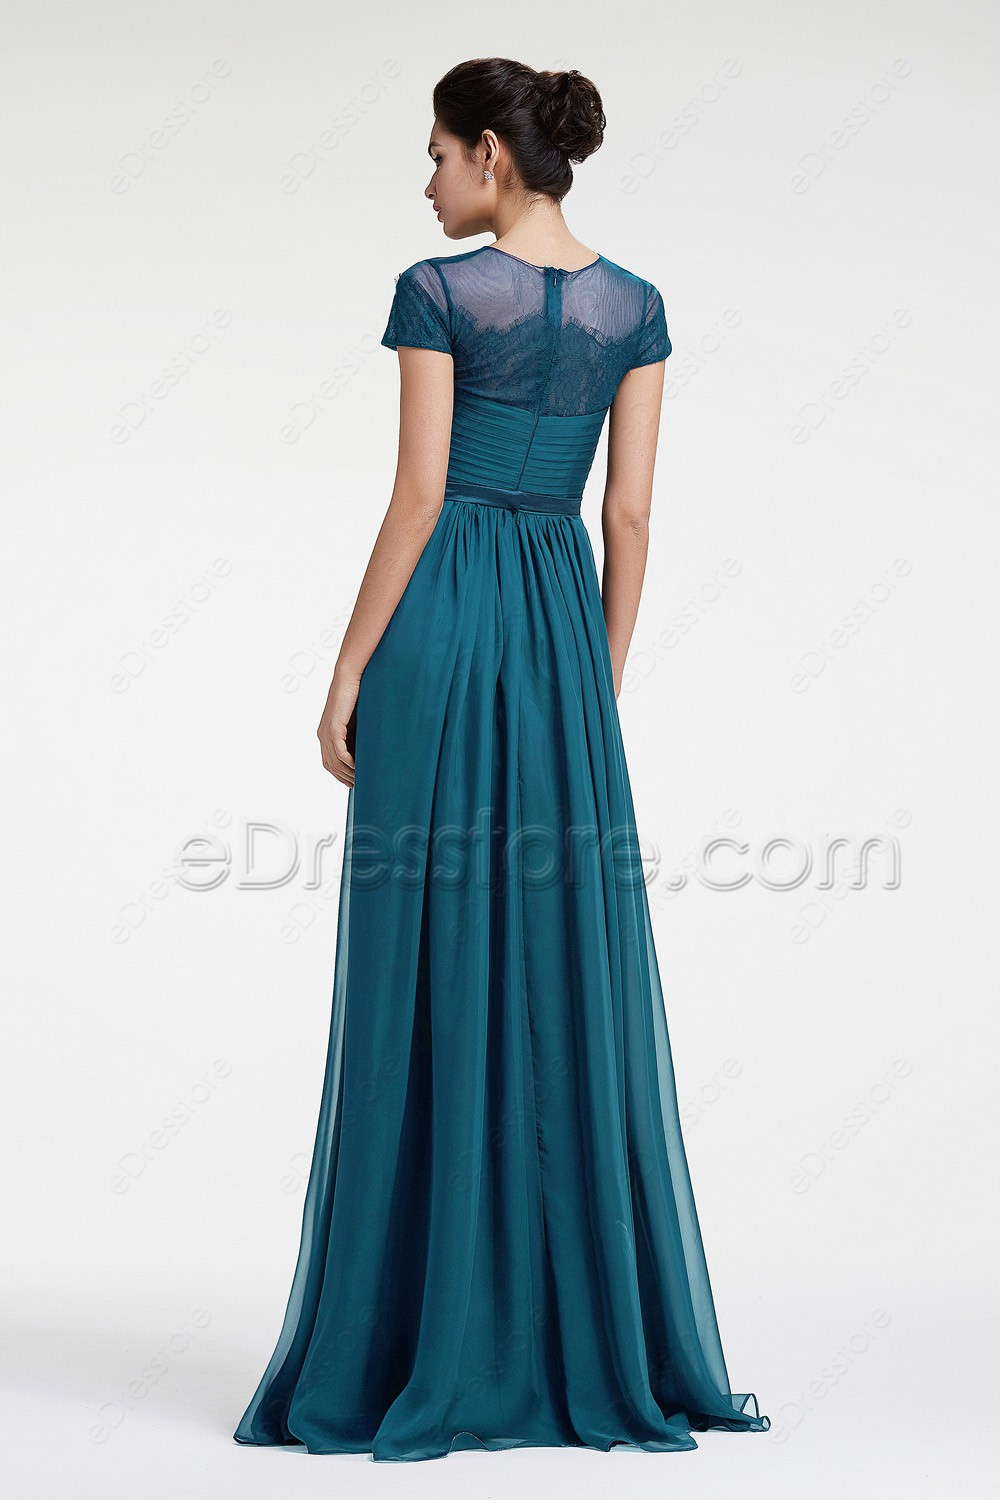 Teal maid of honor dresses with sleeves bridesmaid dresses for Maid of honor wedding dresses